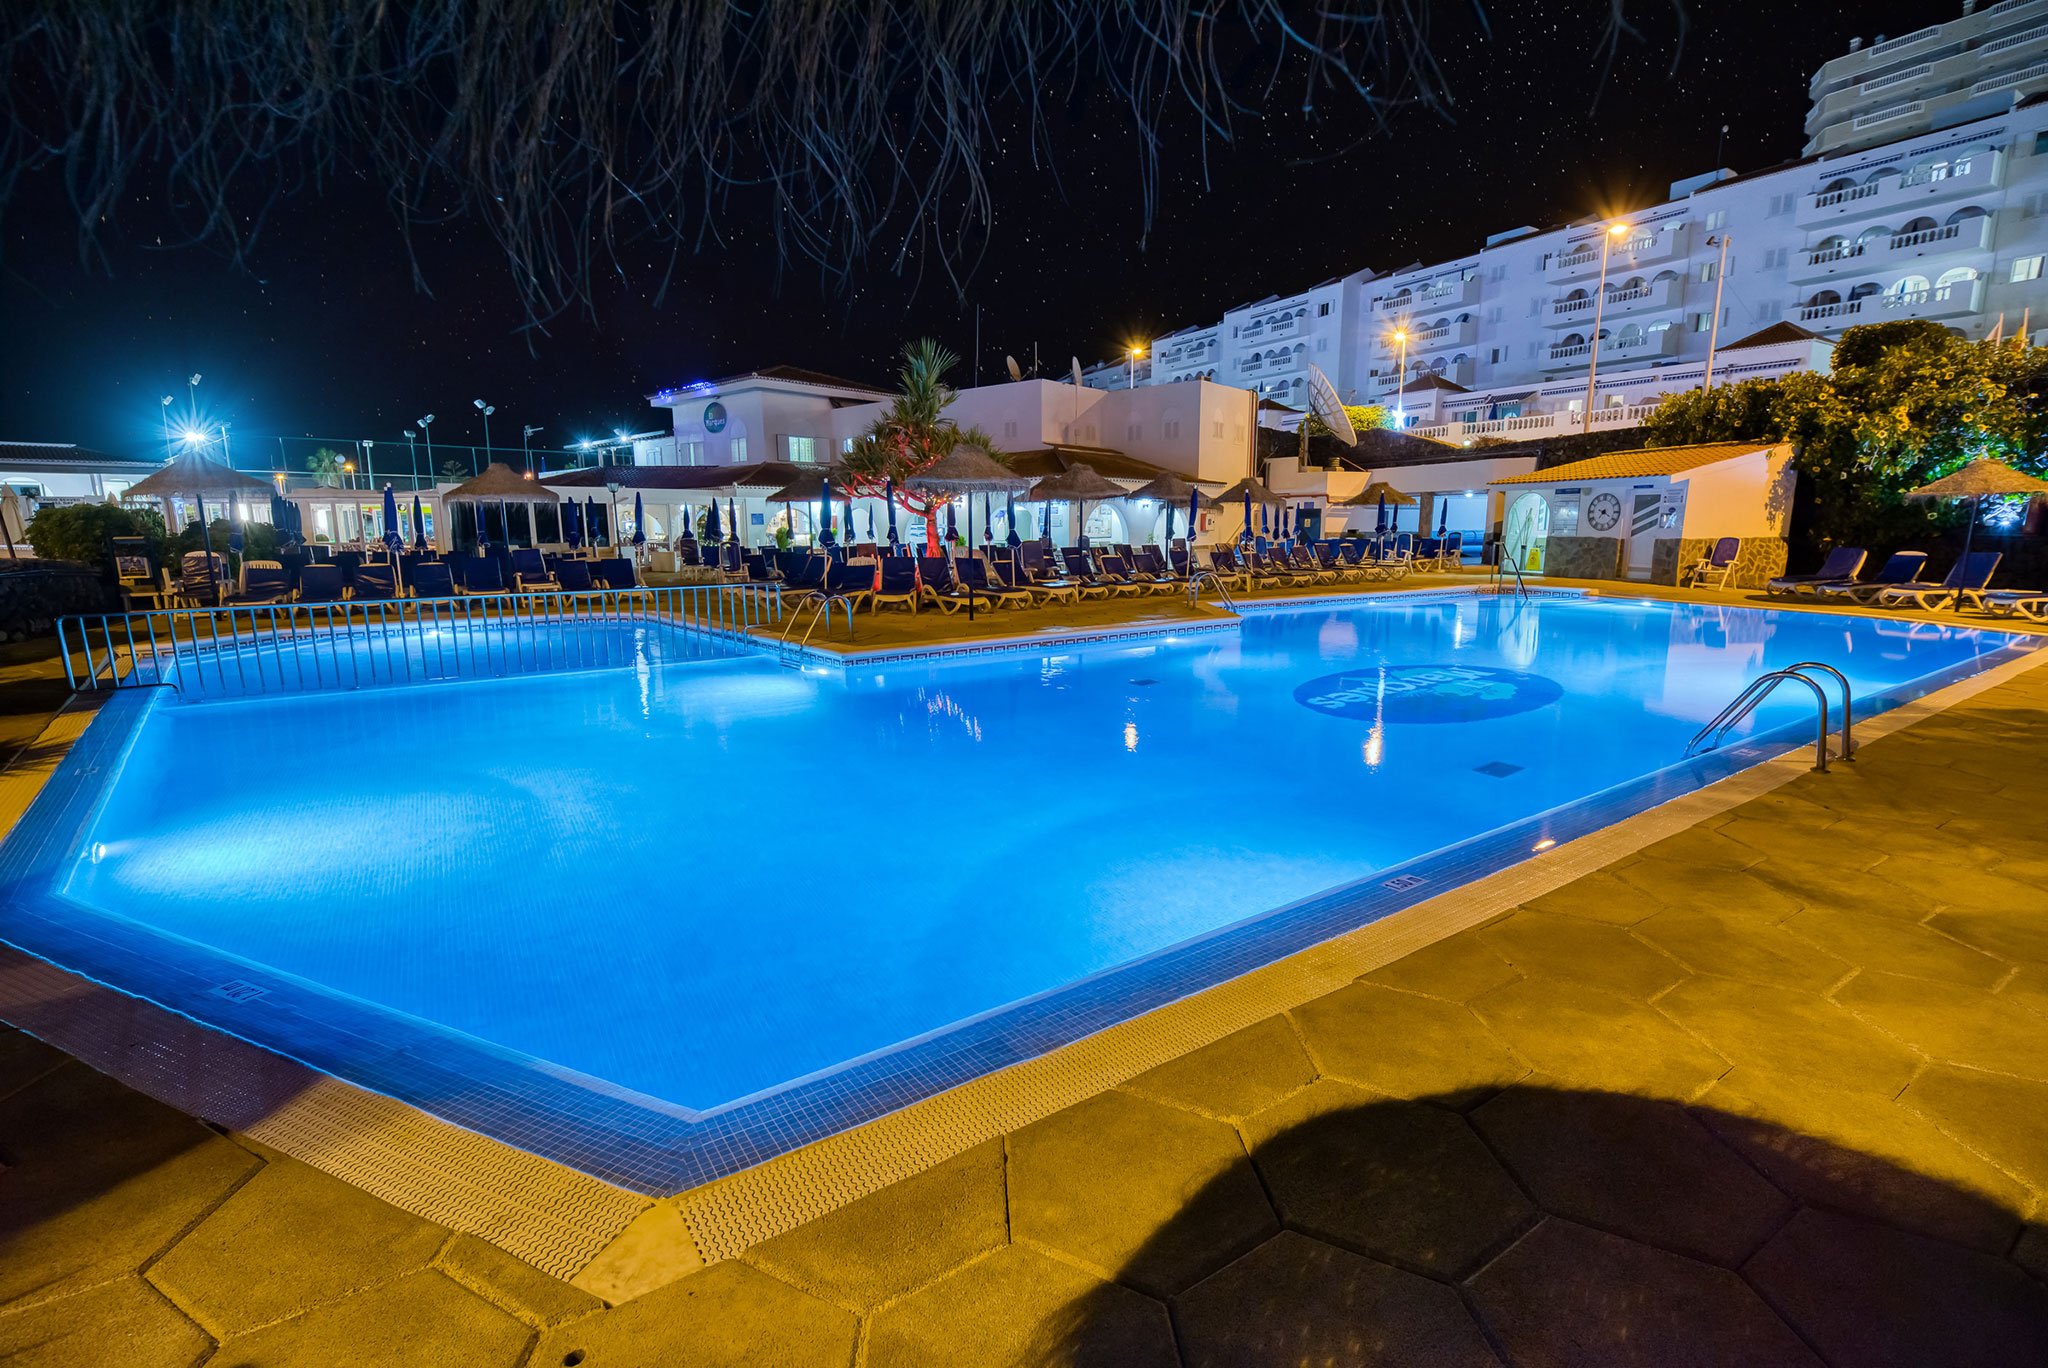 el-marques-night-pool